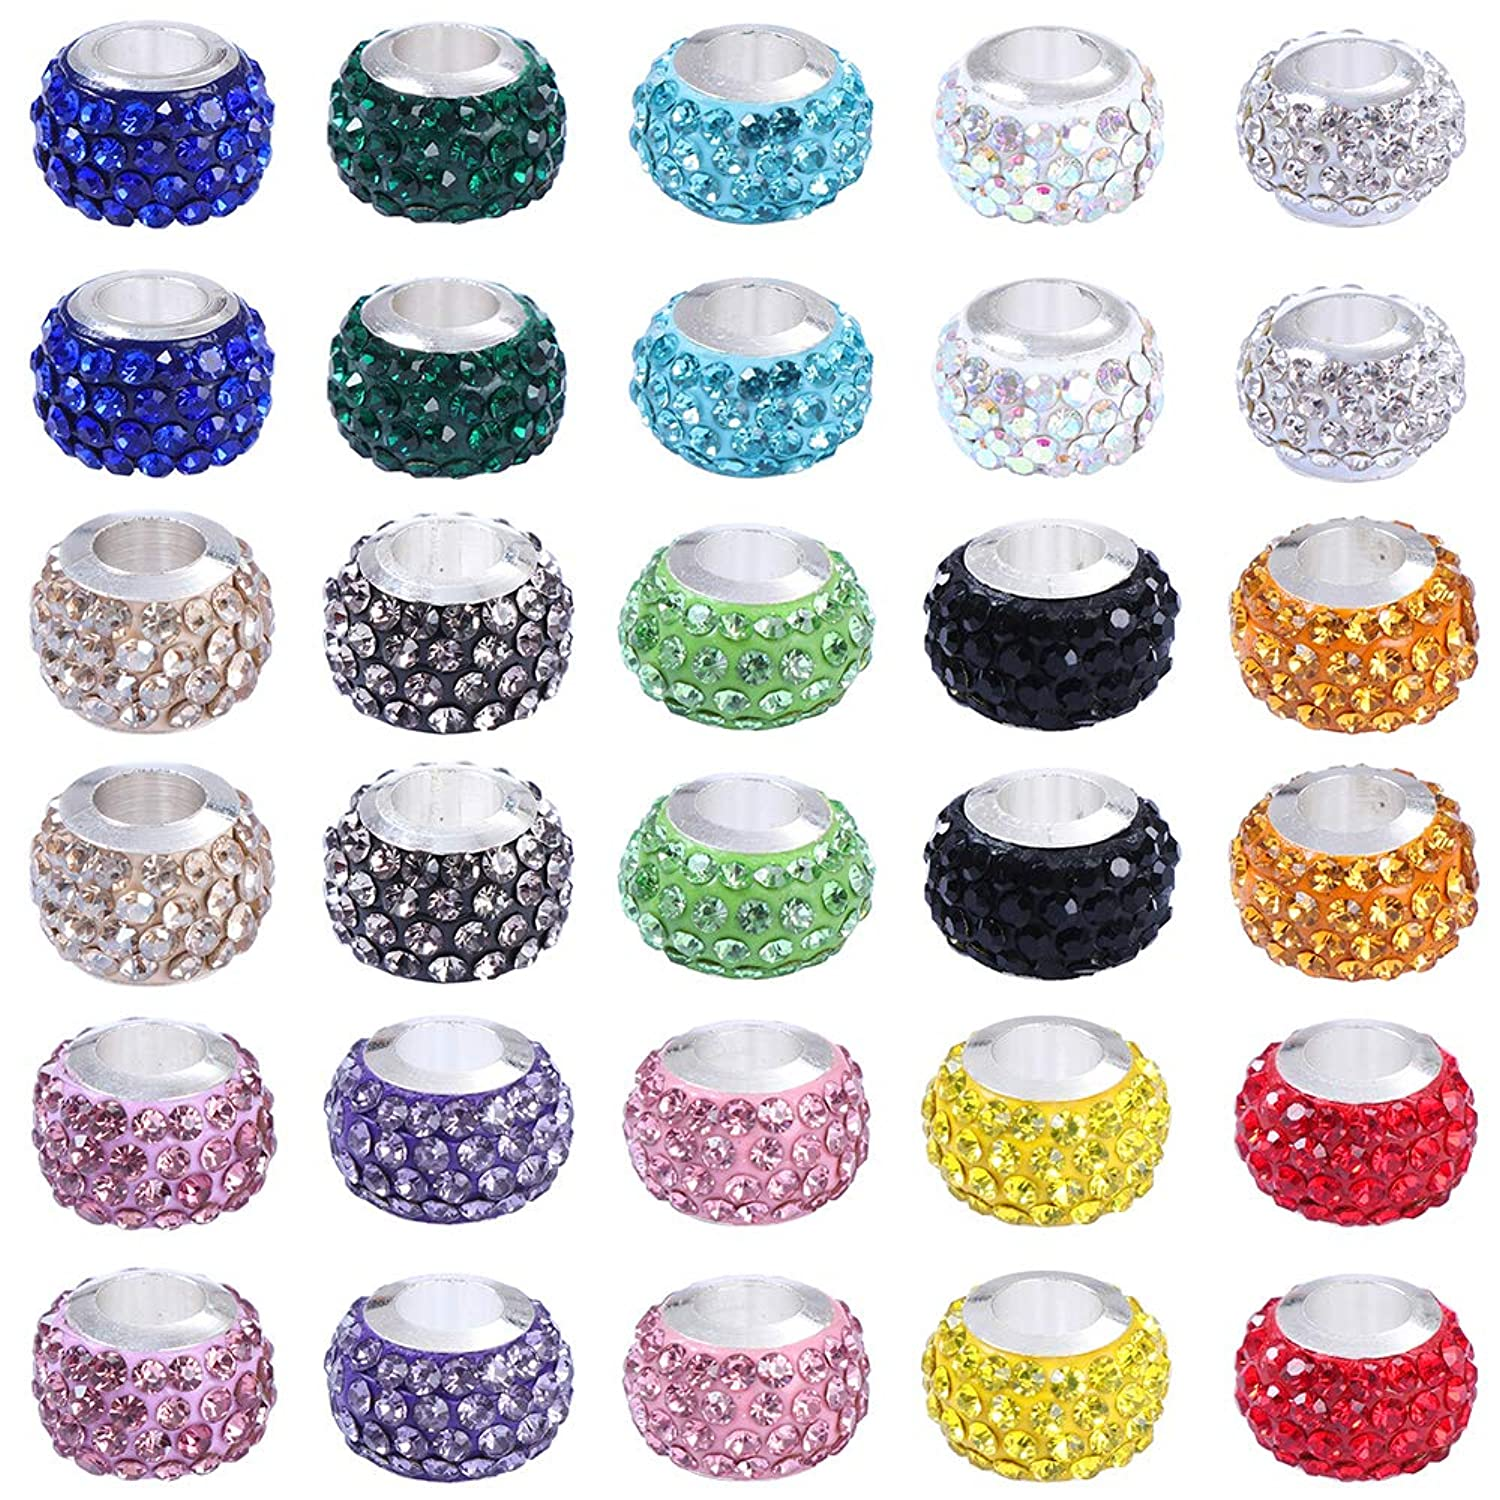 30 Pieces Rhinestone Dreadlocks Beads Hair Braiding Jewelry Hair Decoration Accessories 15 Color Resin Pave Large Hole Beads for Bracelet and Necklace Crafting